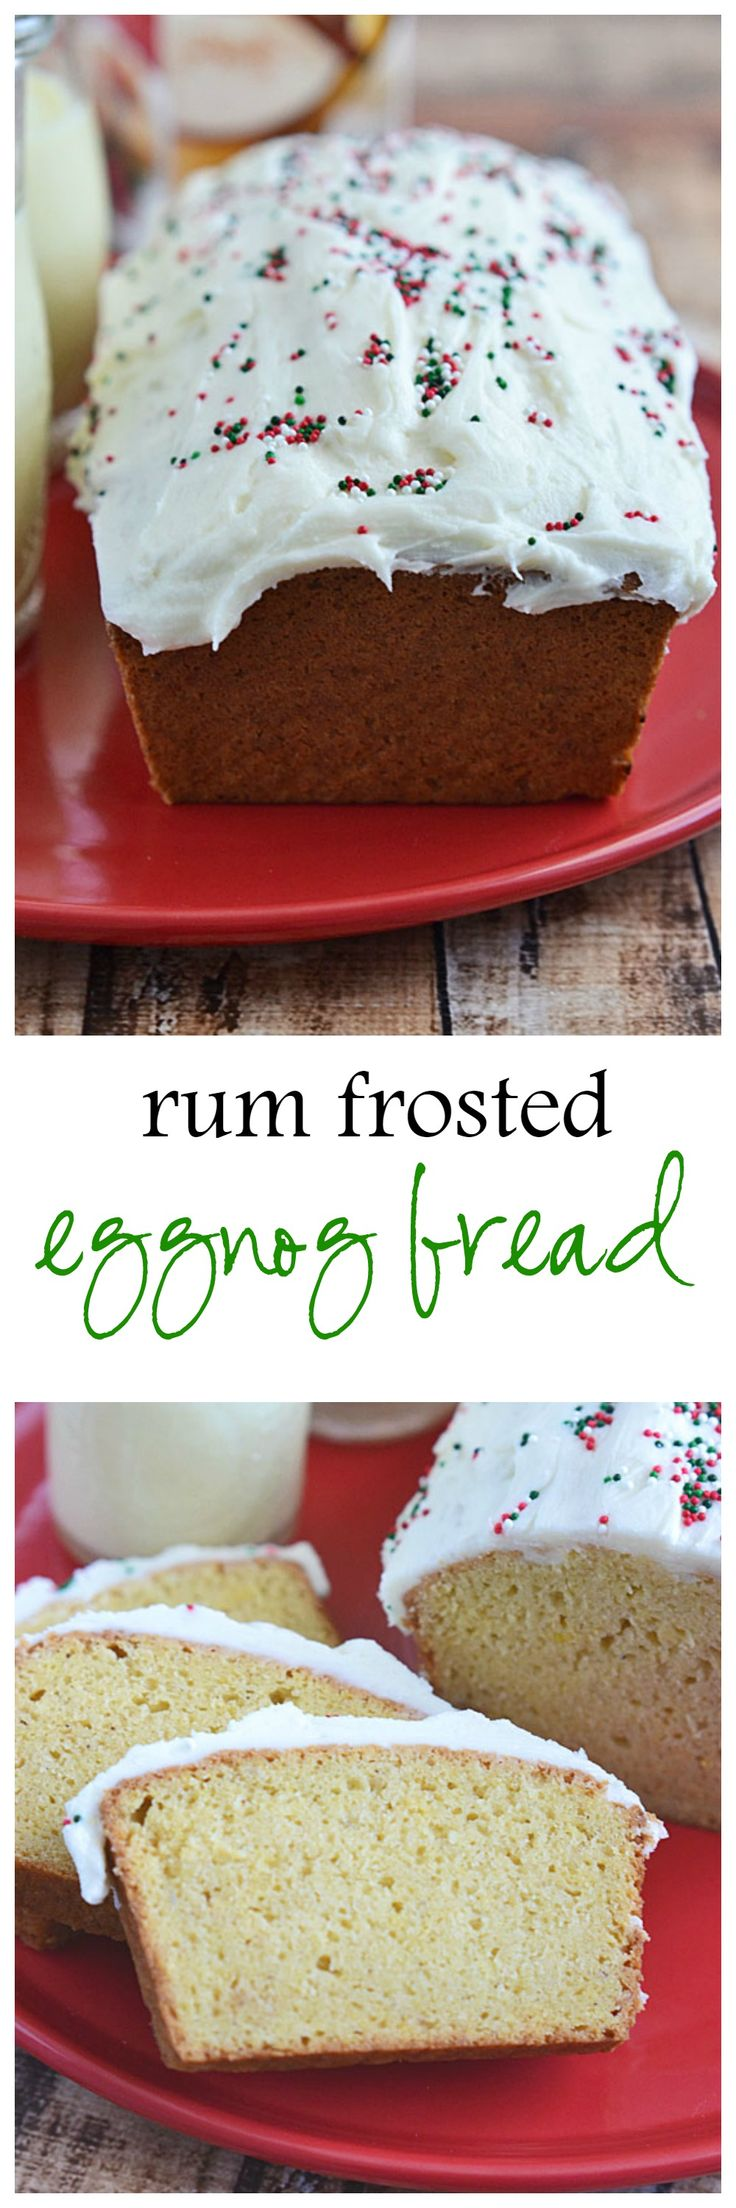 Packed with holiday flavors - eggnog, nutmeg, vanilla, and rum - this Rum Frosted Eggnog Bread is the perfect addition to our holiday breakfast table! by kitchenmeetsgirl #Bread #Rum #Eggnog #Holiday